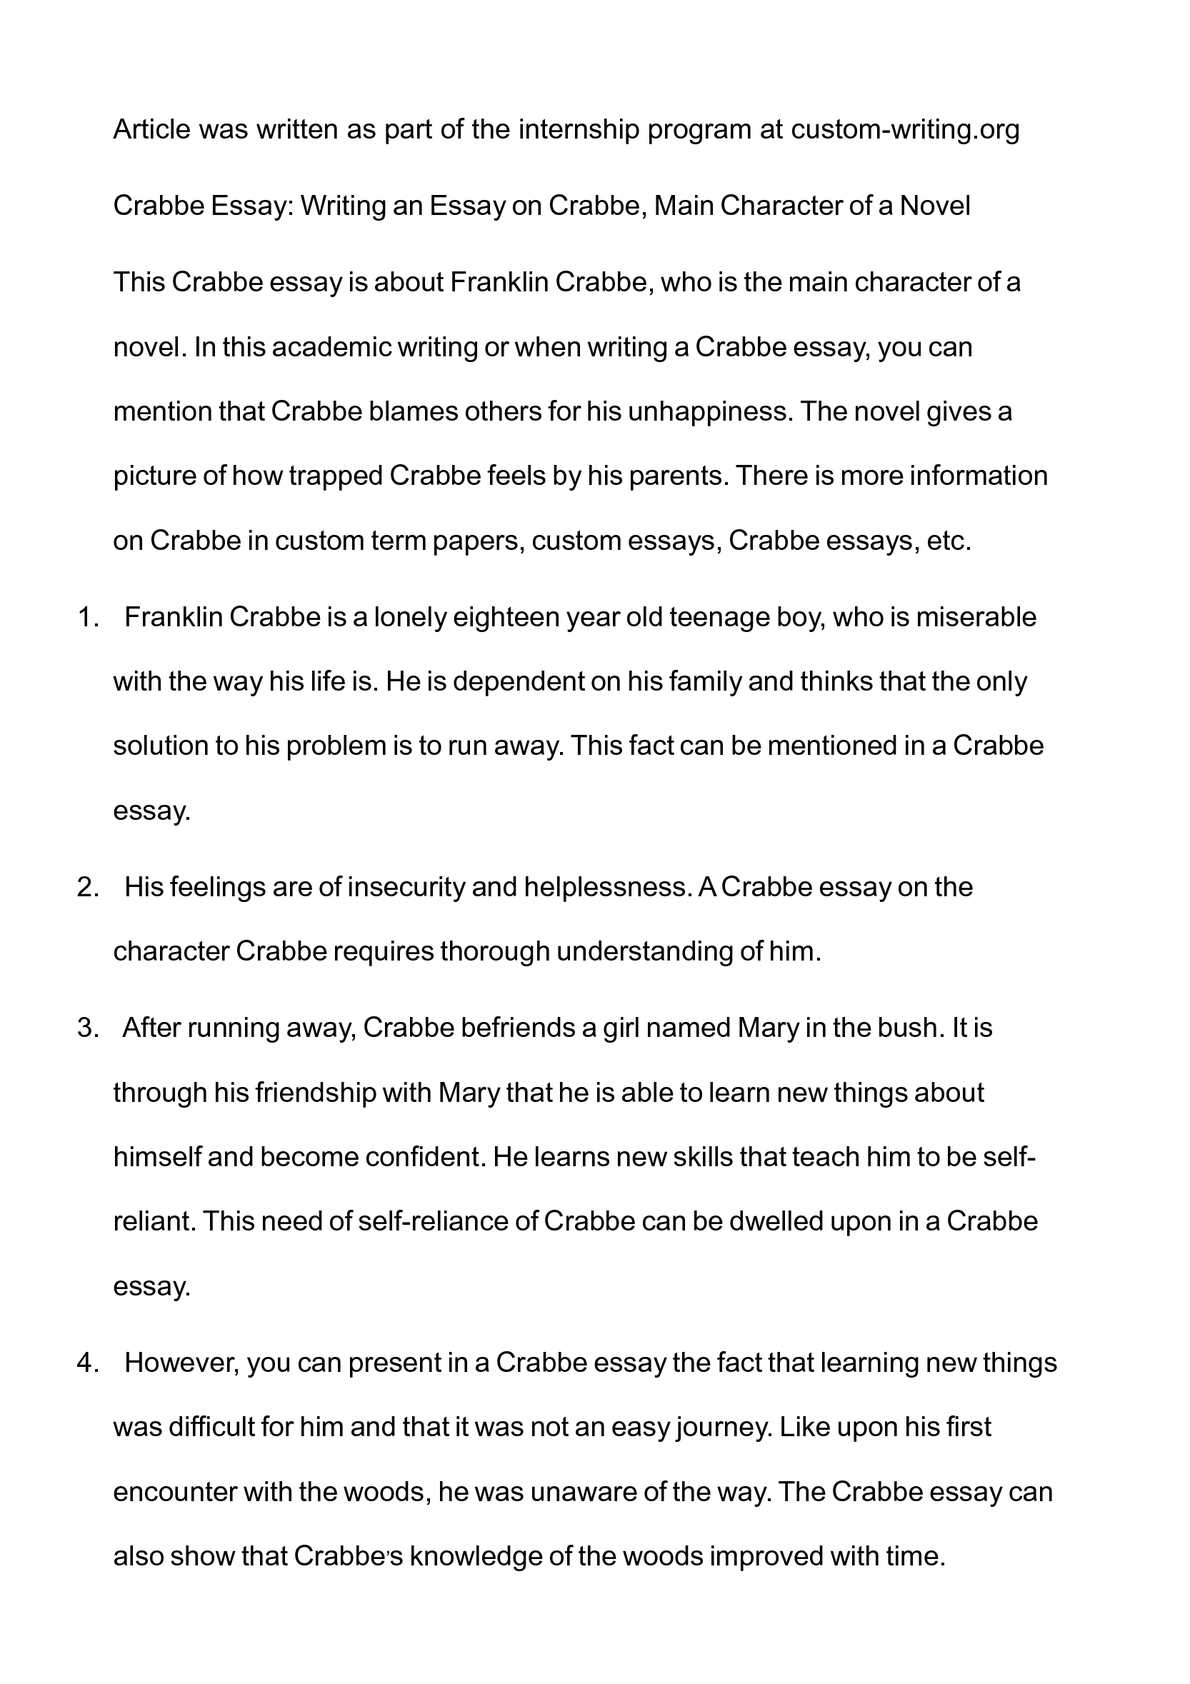 calam eacute o crabbe essay writing an essay on crabbe main character calameacuteo crabbe essay writing an essay on crabbe main character of a novel